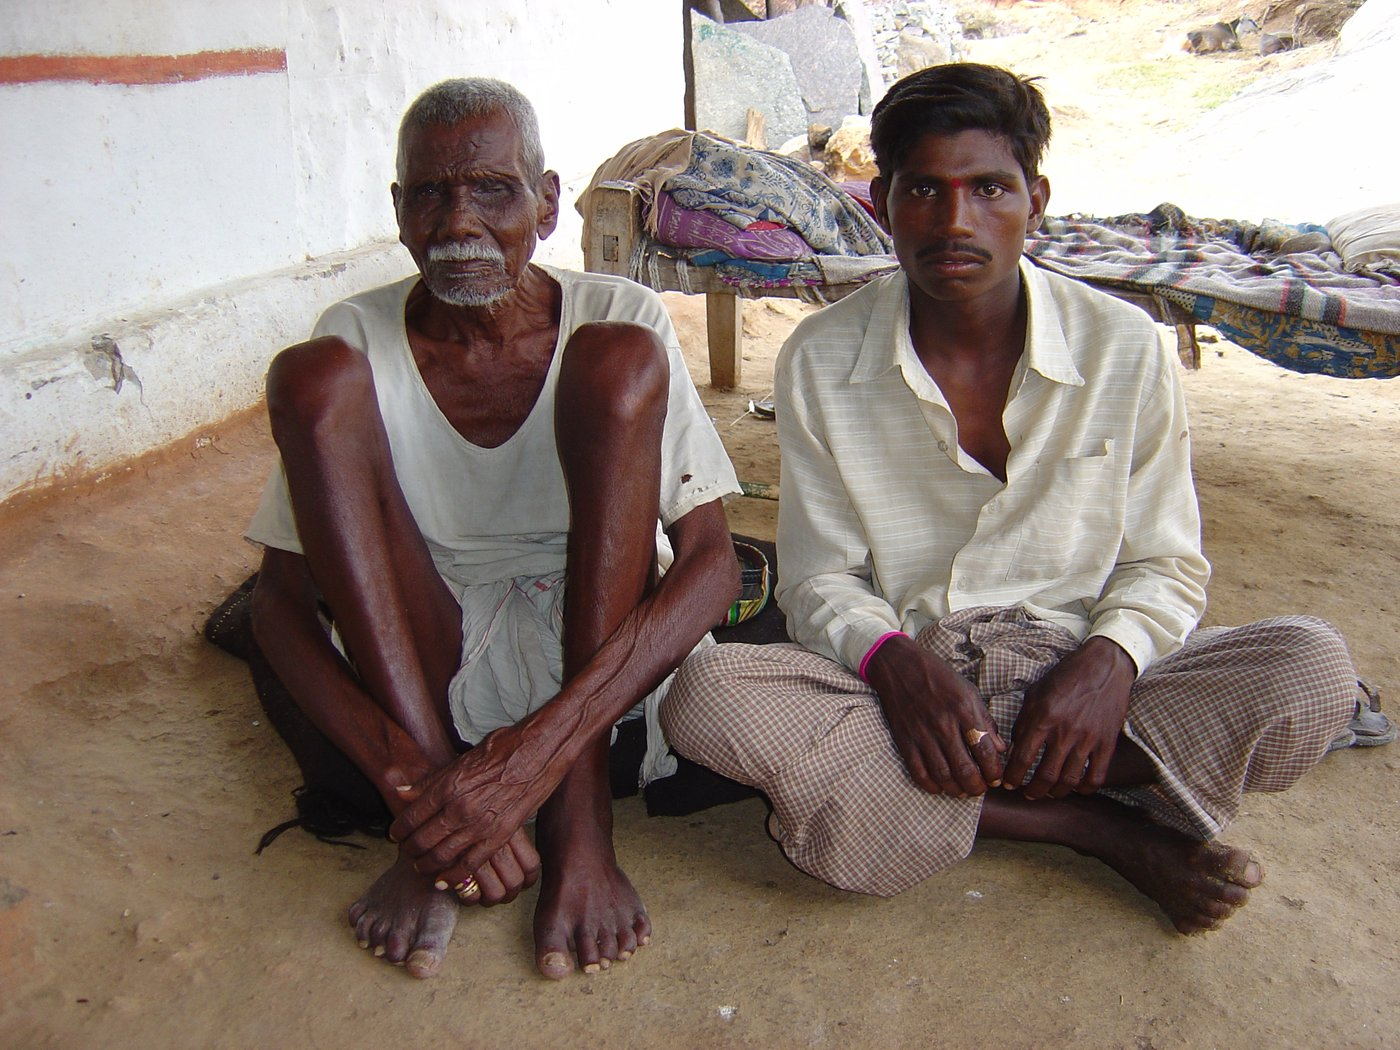 Kathulappa with his grandson Narasimhulu. No post-mortem examination was done when his son Chinna Saianna took his own life in December, 2003. They could not afford it